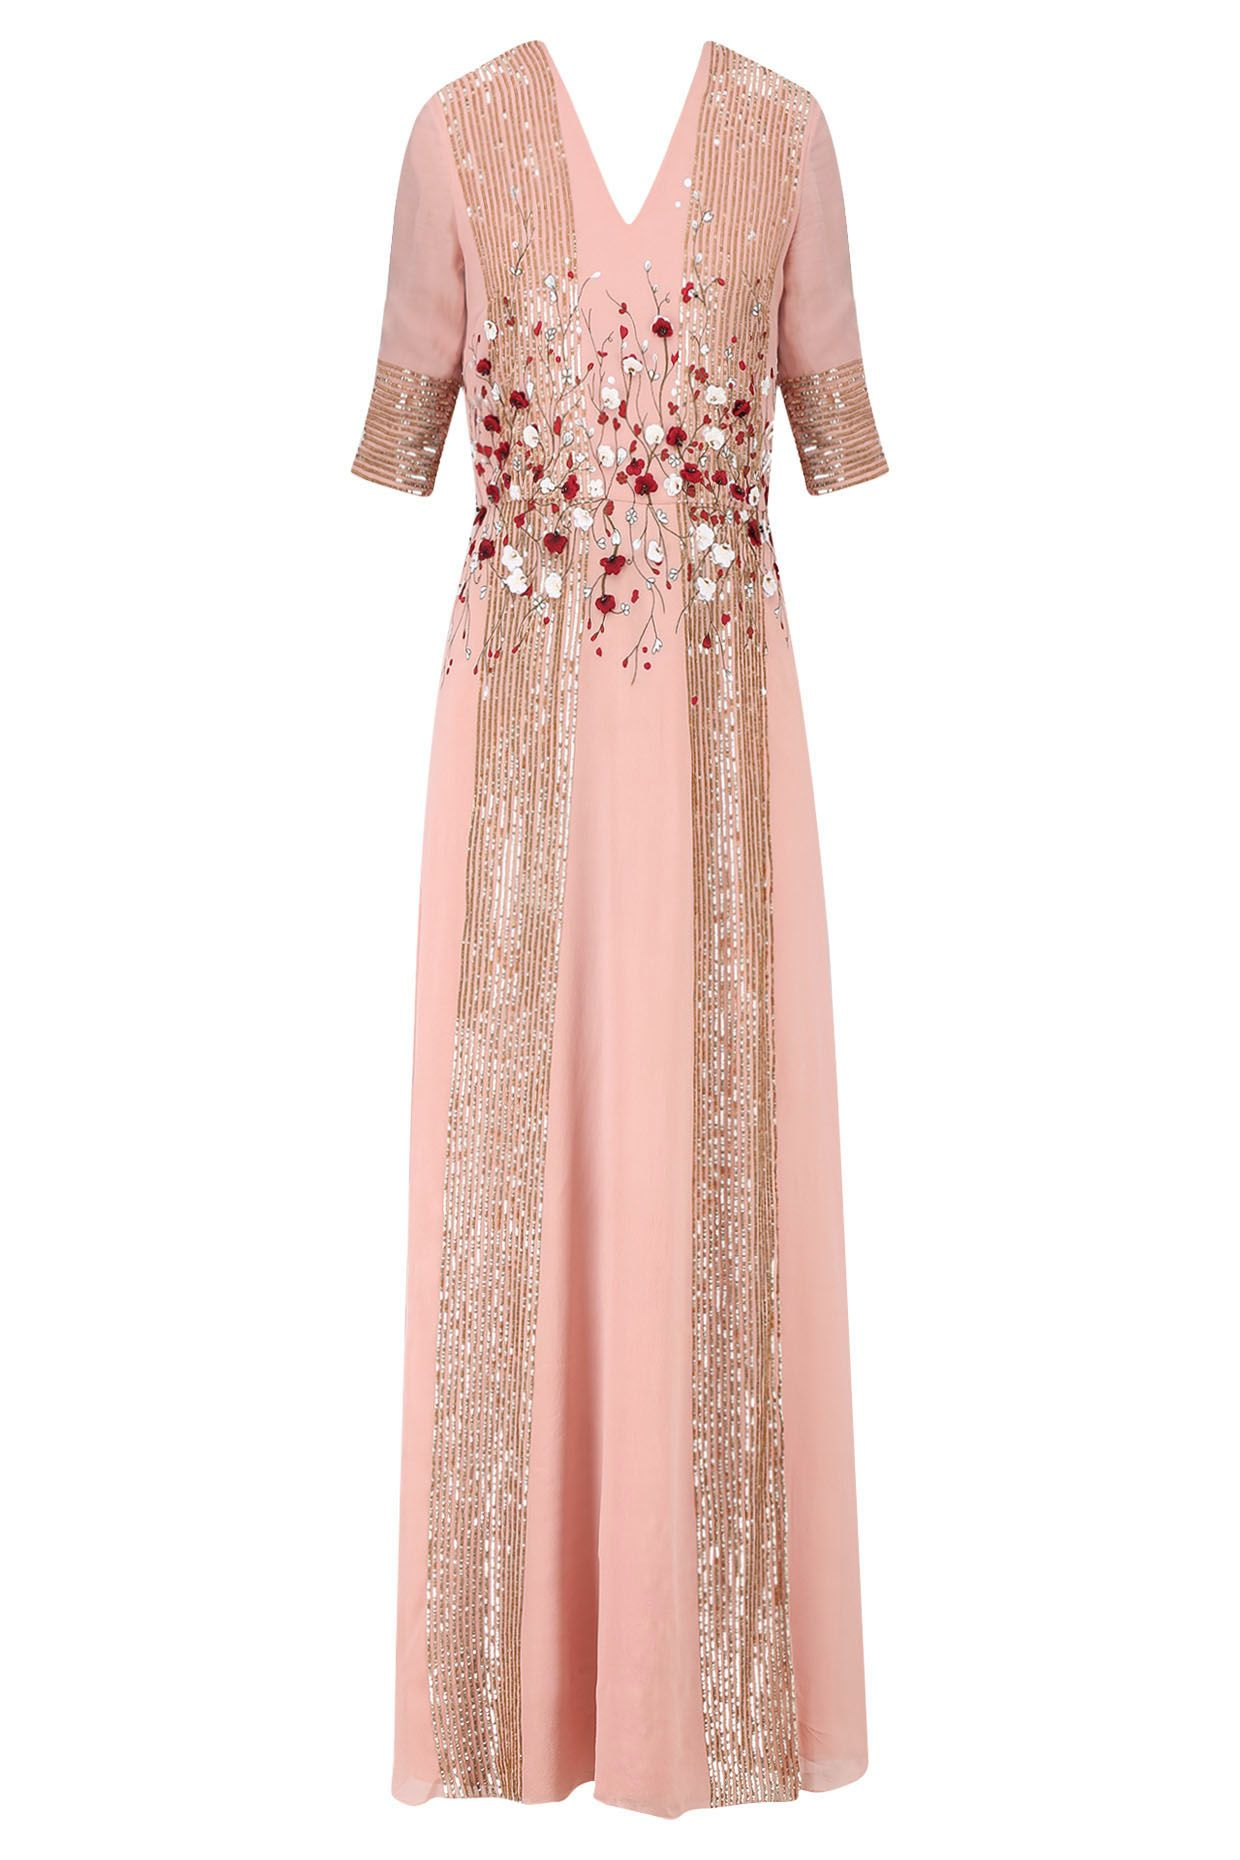 Powder pink and red handcut d floral work long dress available only